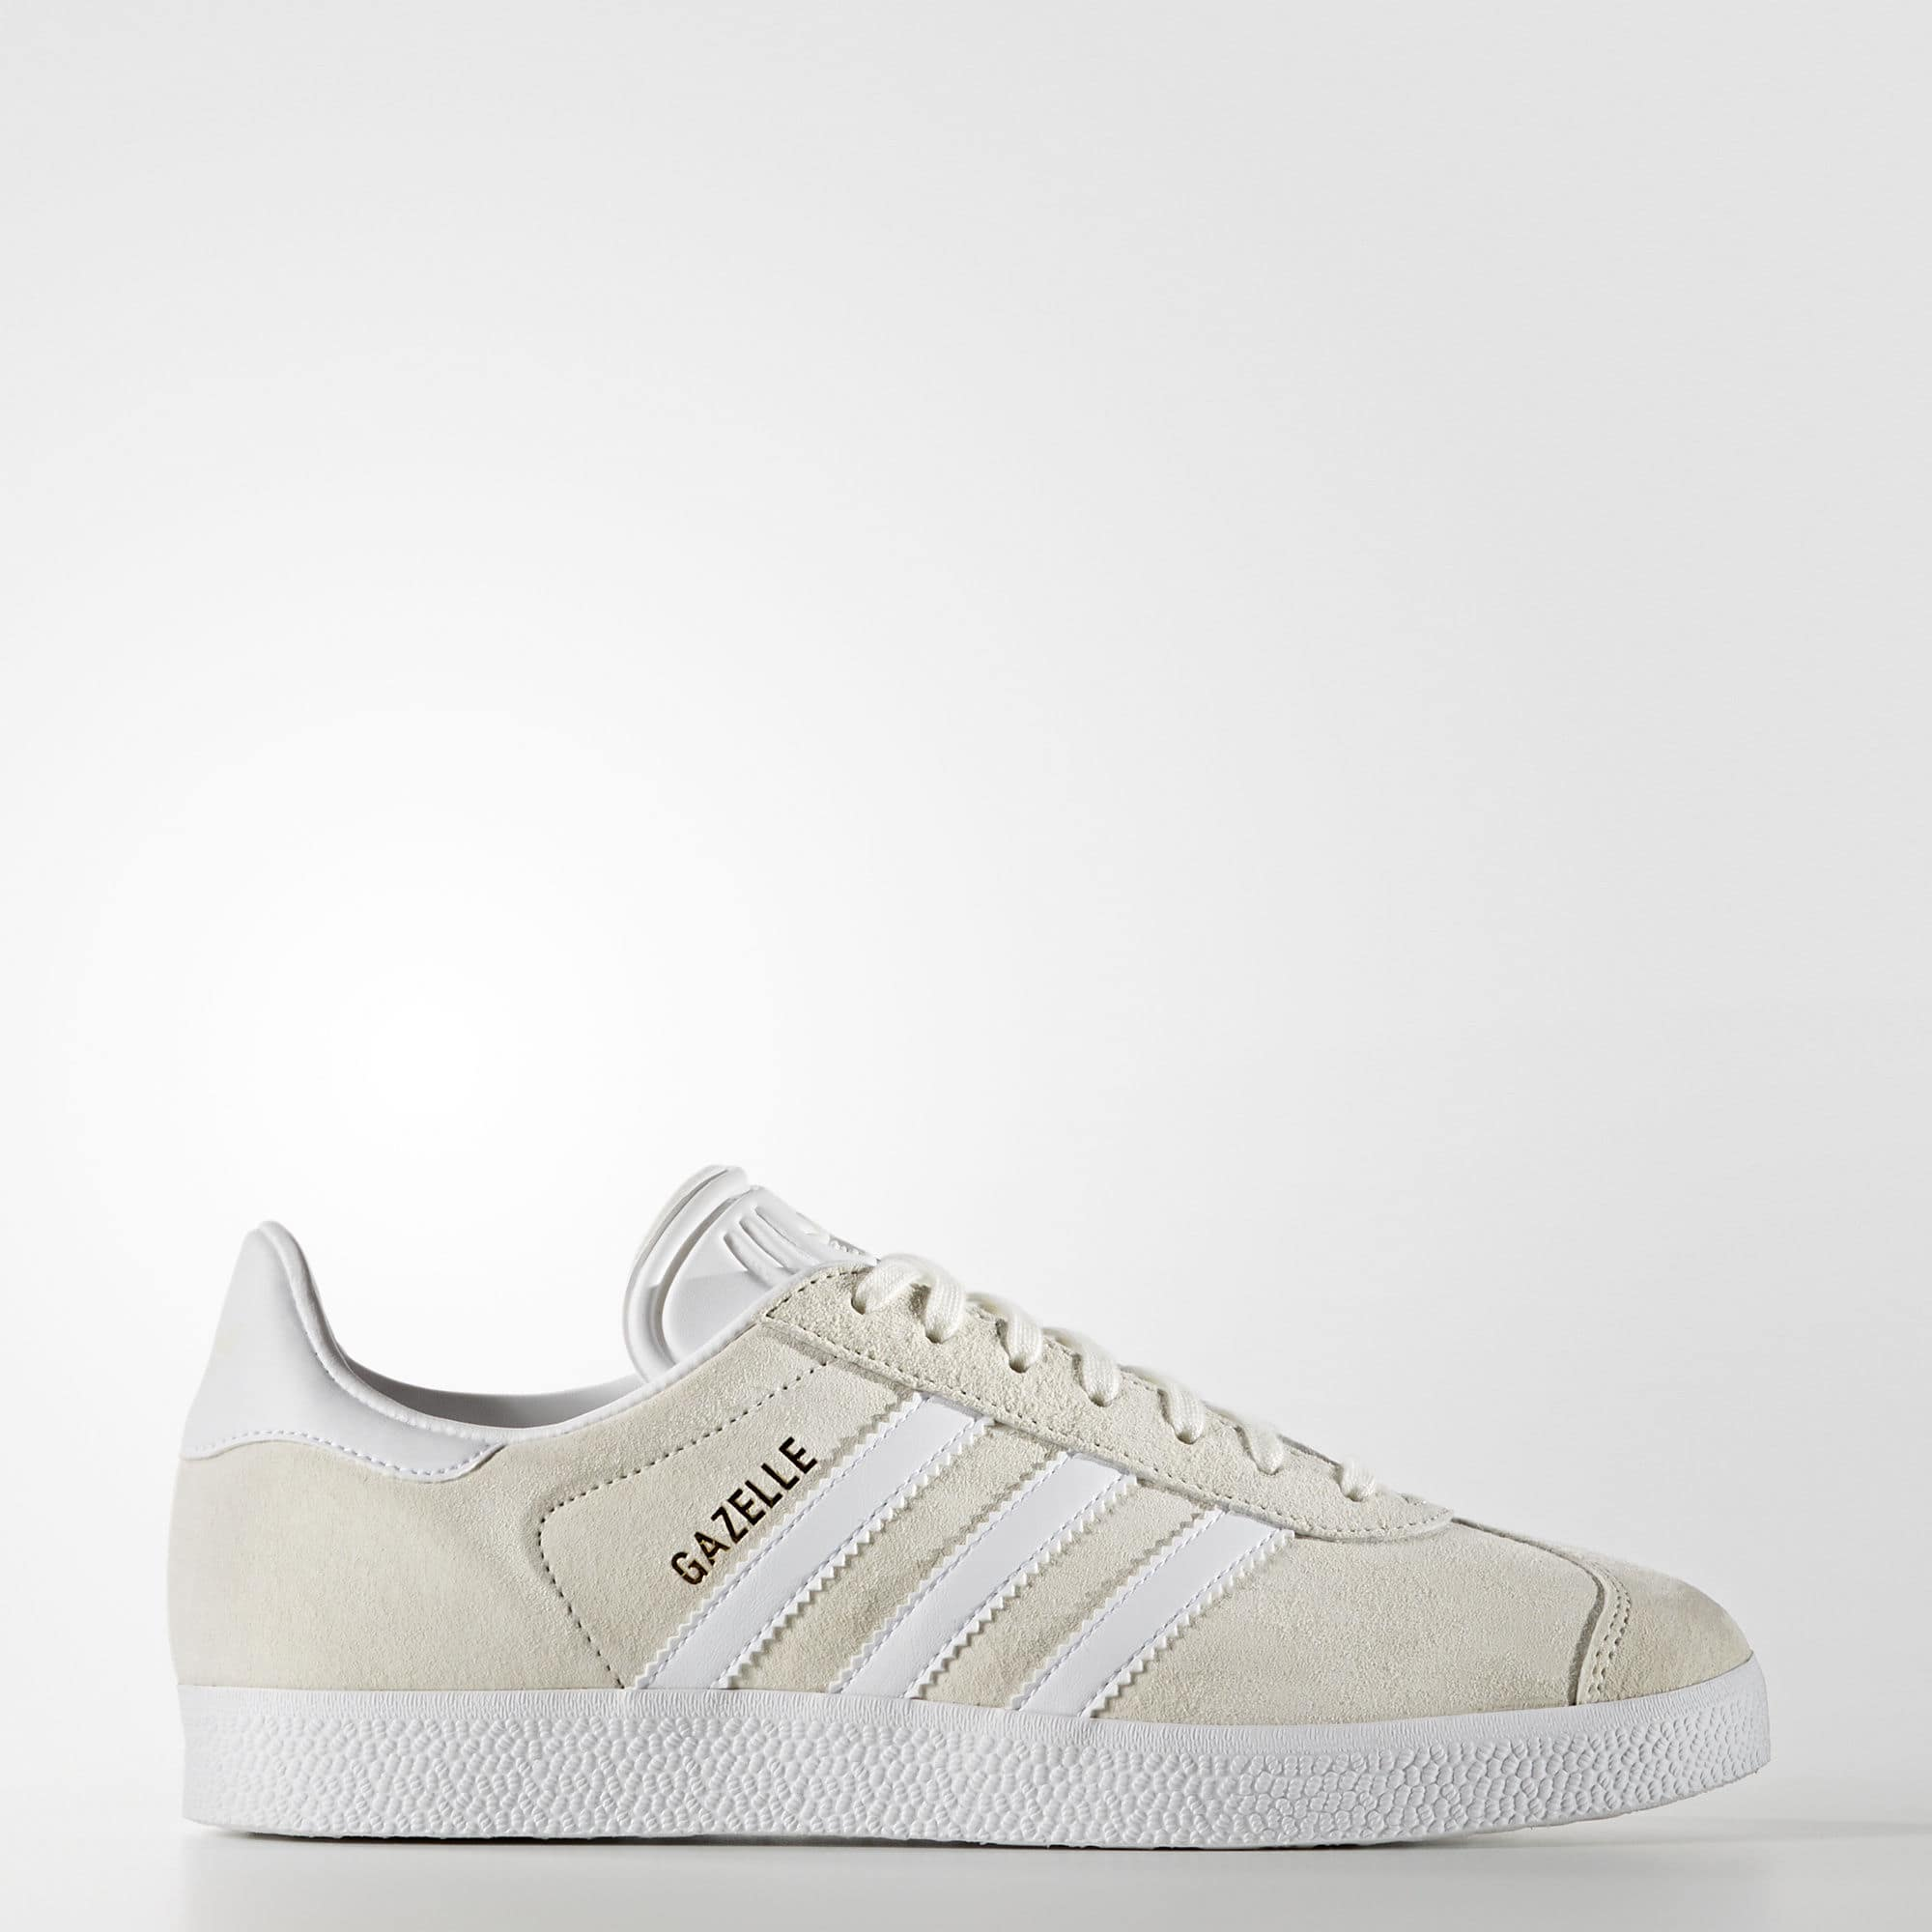 eBay: Women's adidas Gazelle Shoes (Off White) $34.99 Plus